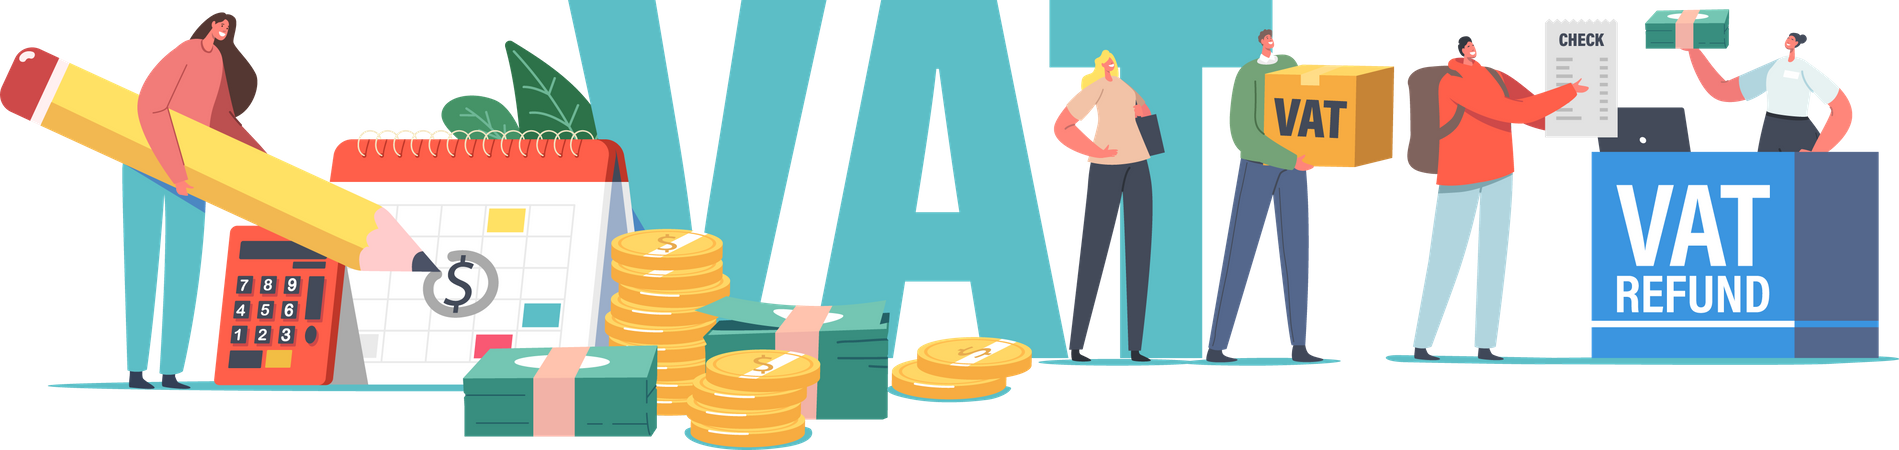 Getting Refund for Foreign Shopping in Airport Illustration